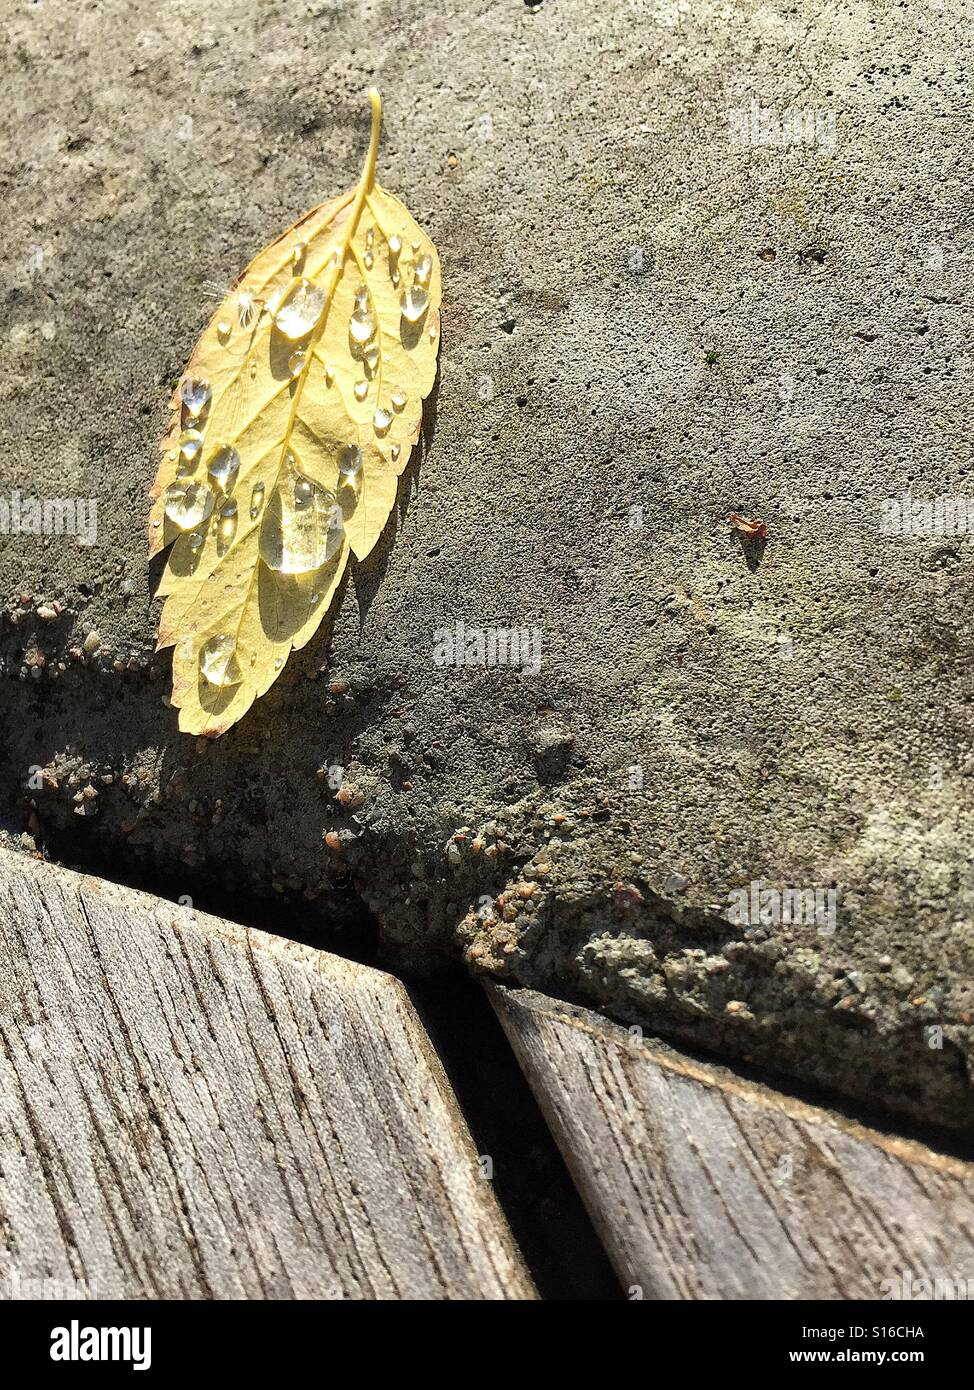 A teary leaf on a cold concrete ground. - Stock Image